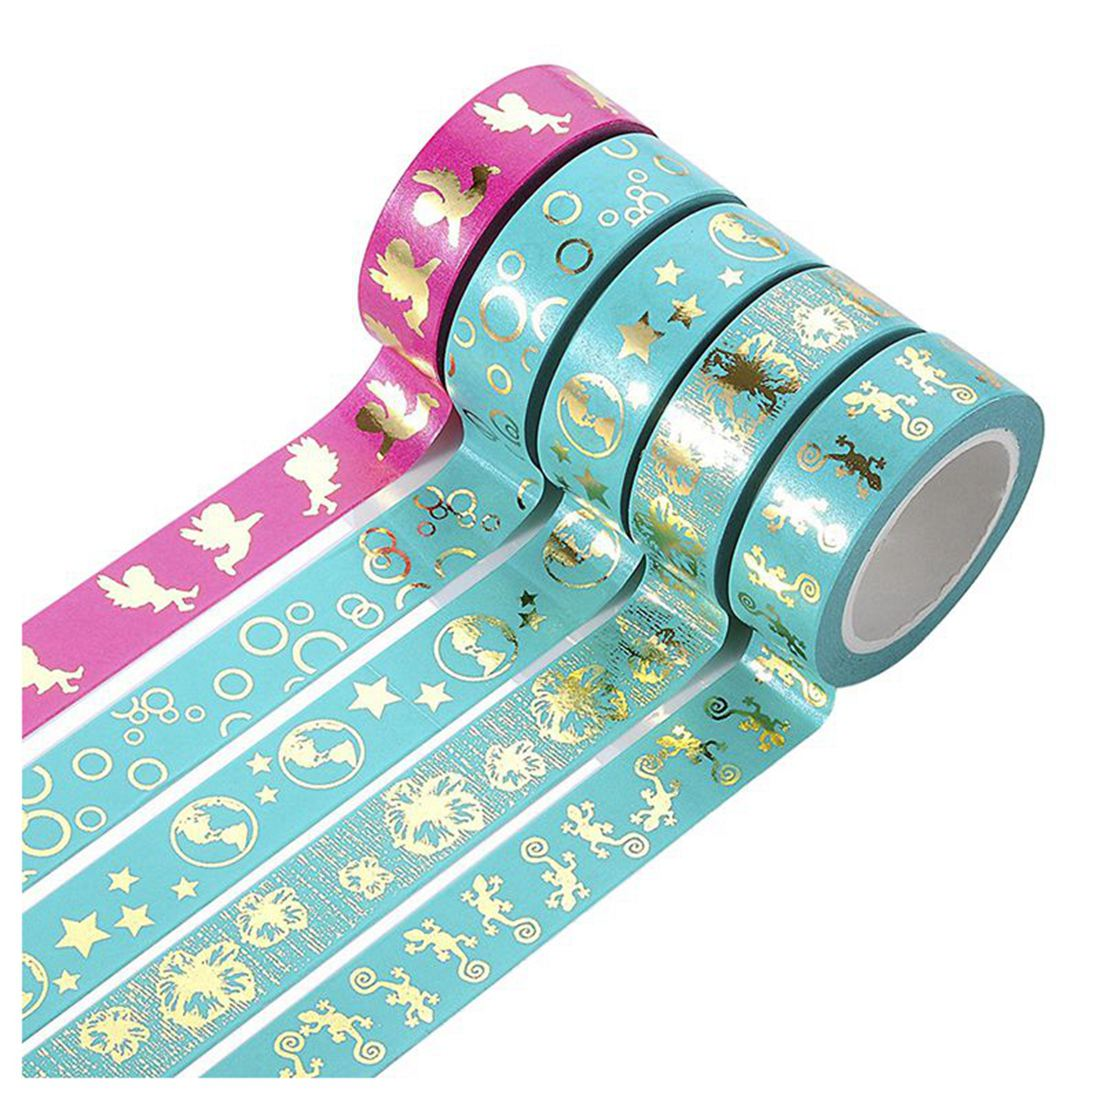 Decorative DIY Tape Washi Sticky Paper Foil Masking Adhesive Washi Tape For Scrapbooking DIY Decoration 5xRoll, 9cmx5m creative life edition washi paper tape 9cm delicacy small objects decorative tape